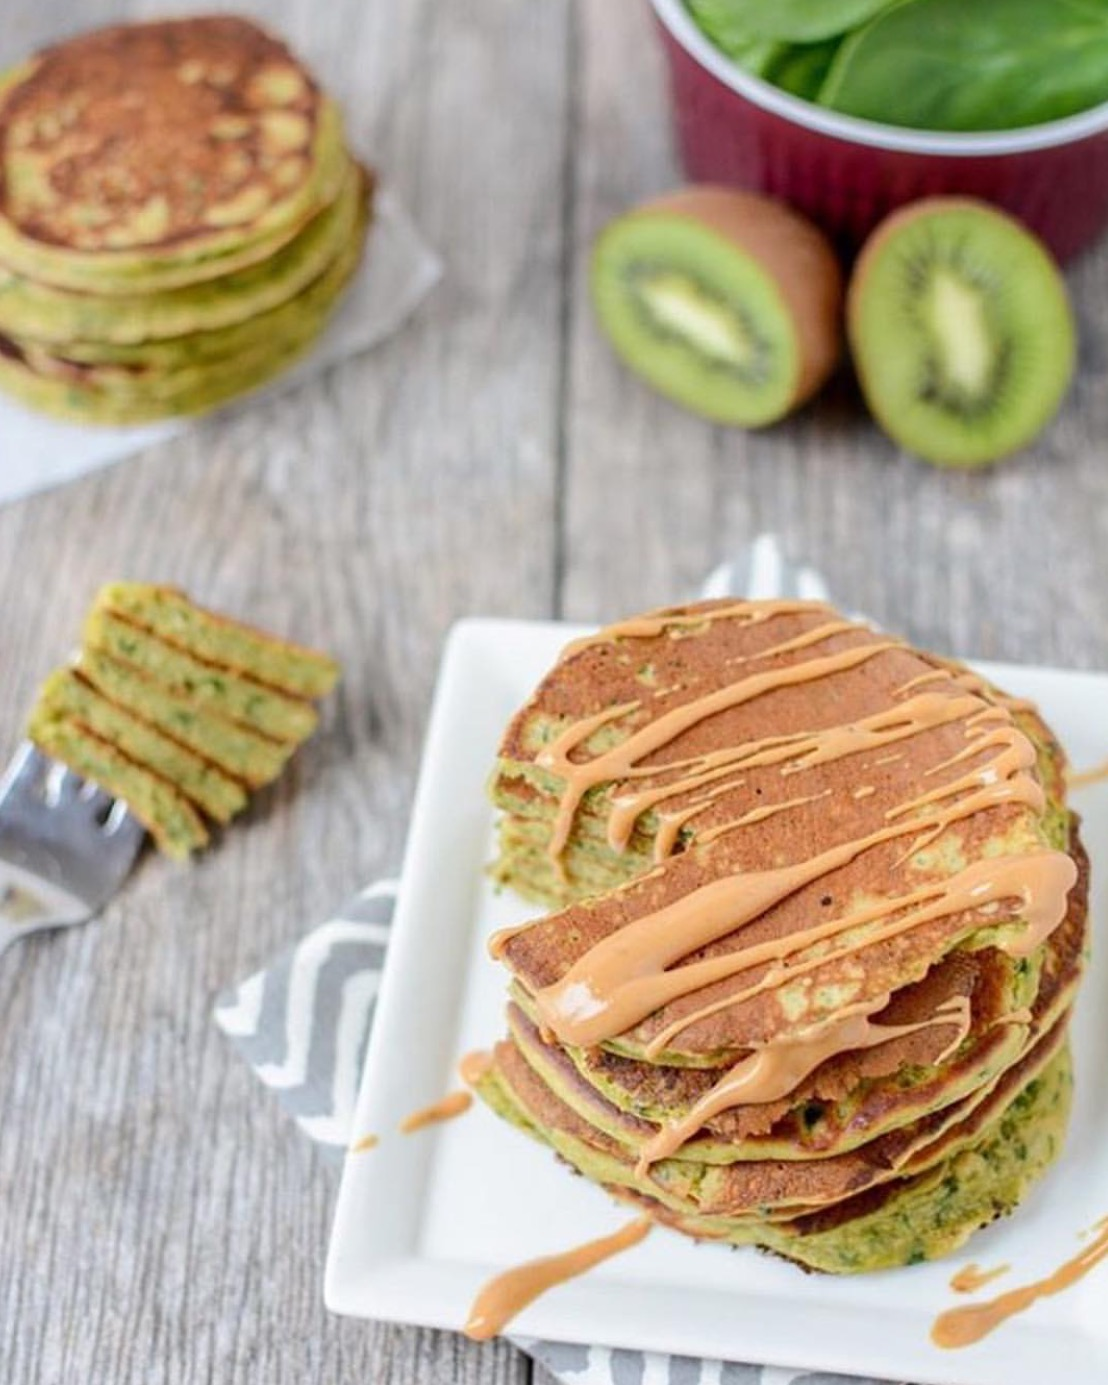 Green Spinach Kiwi Smoothie Pancakes with Crazy Richard's Natural Peanut Butter